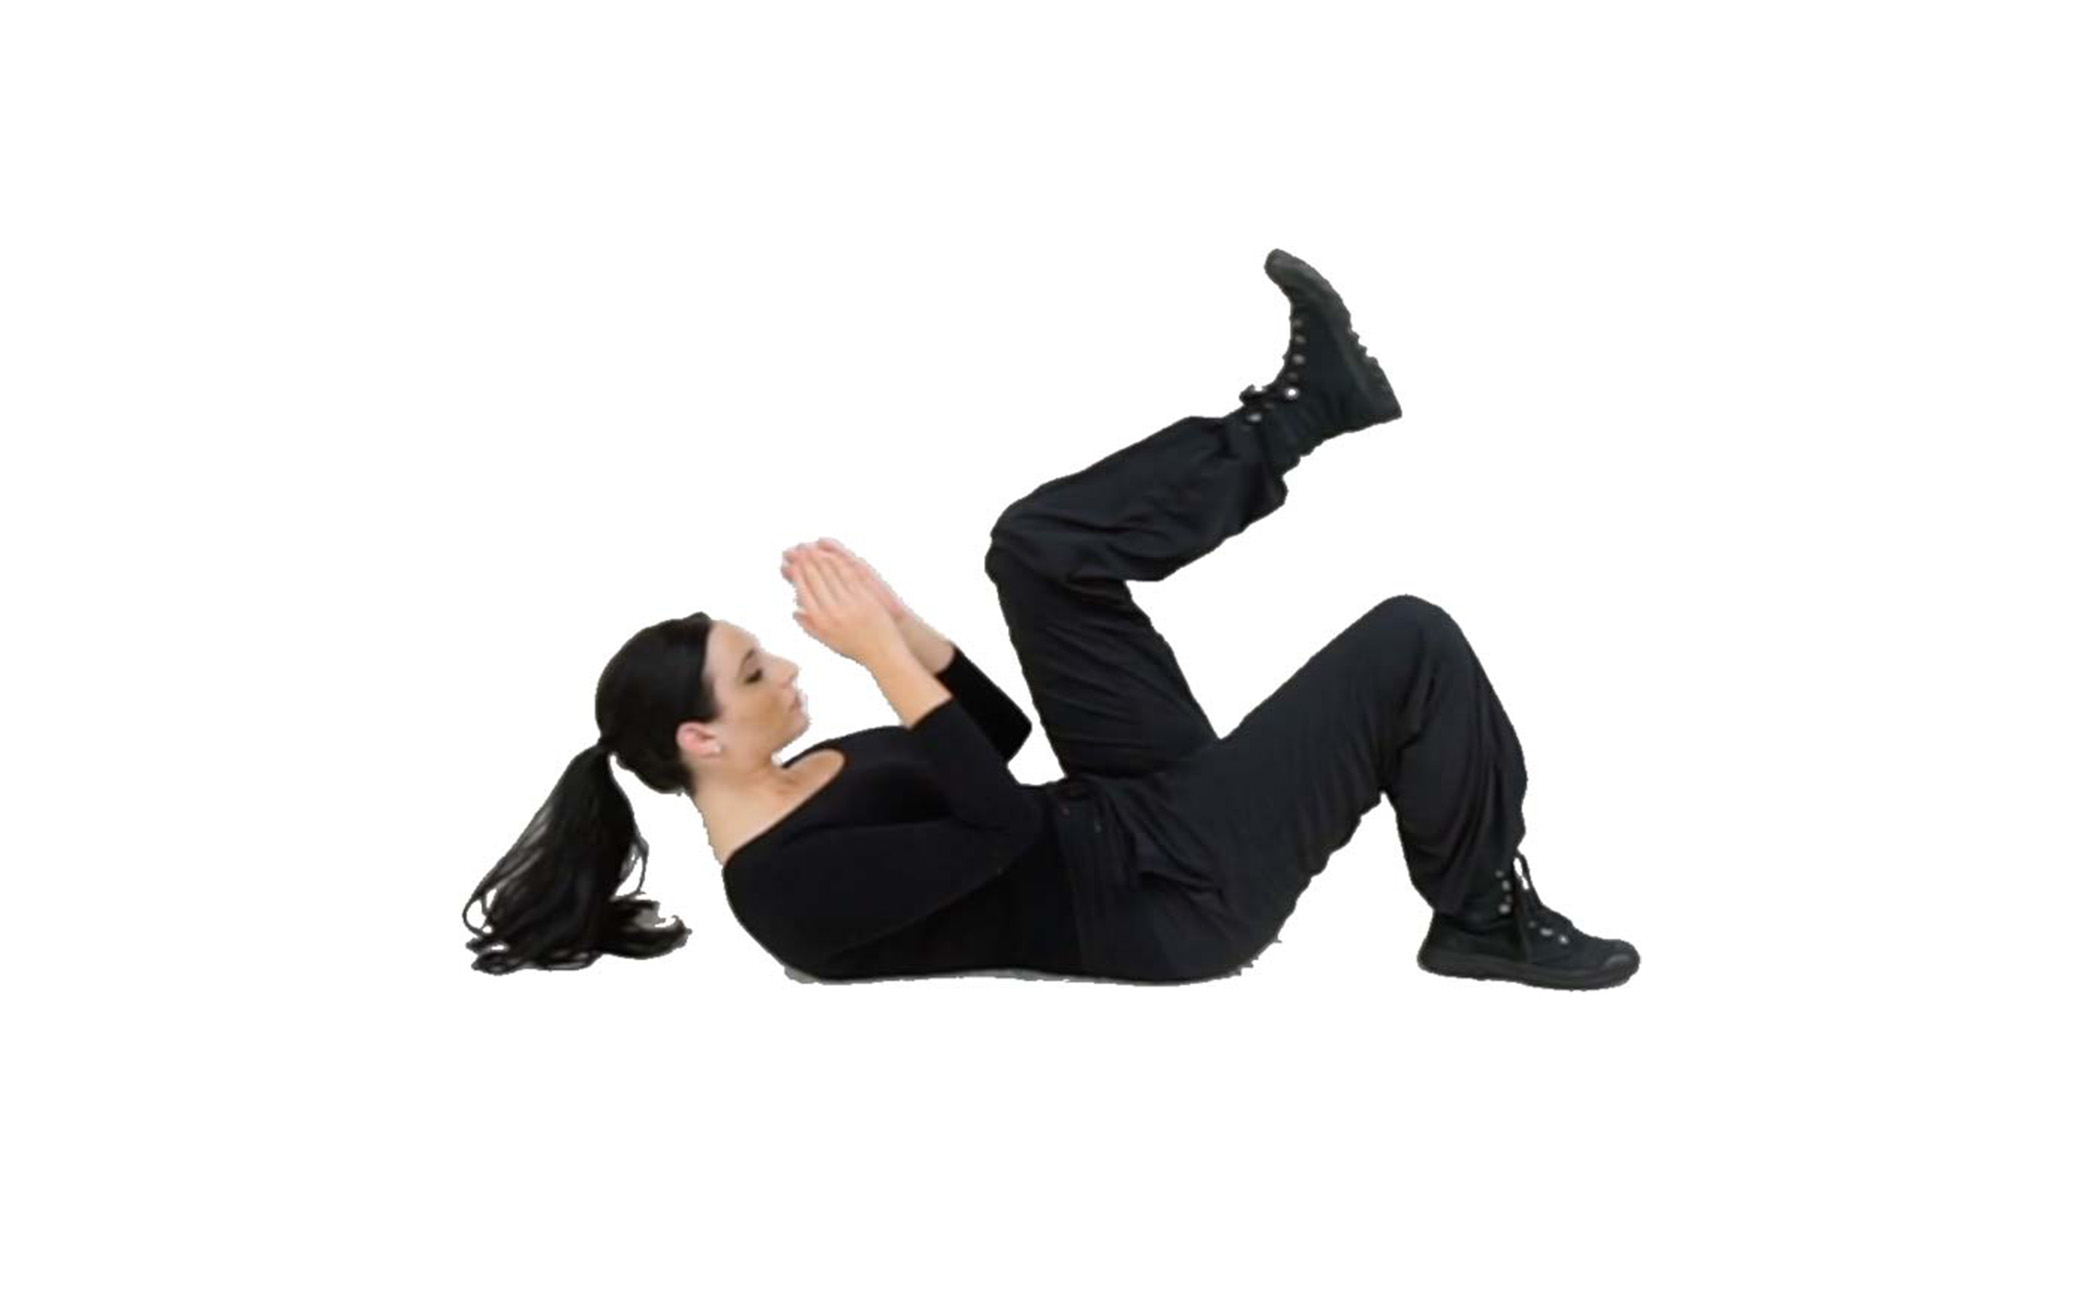 Step 2 - Tuck your chin to raise your head (so you can see your target and raise your hands to protect your face. Raise one leg, bend your knee so it is tucked into your chest and flex your foot so that you are ready to kick if needed.